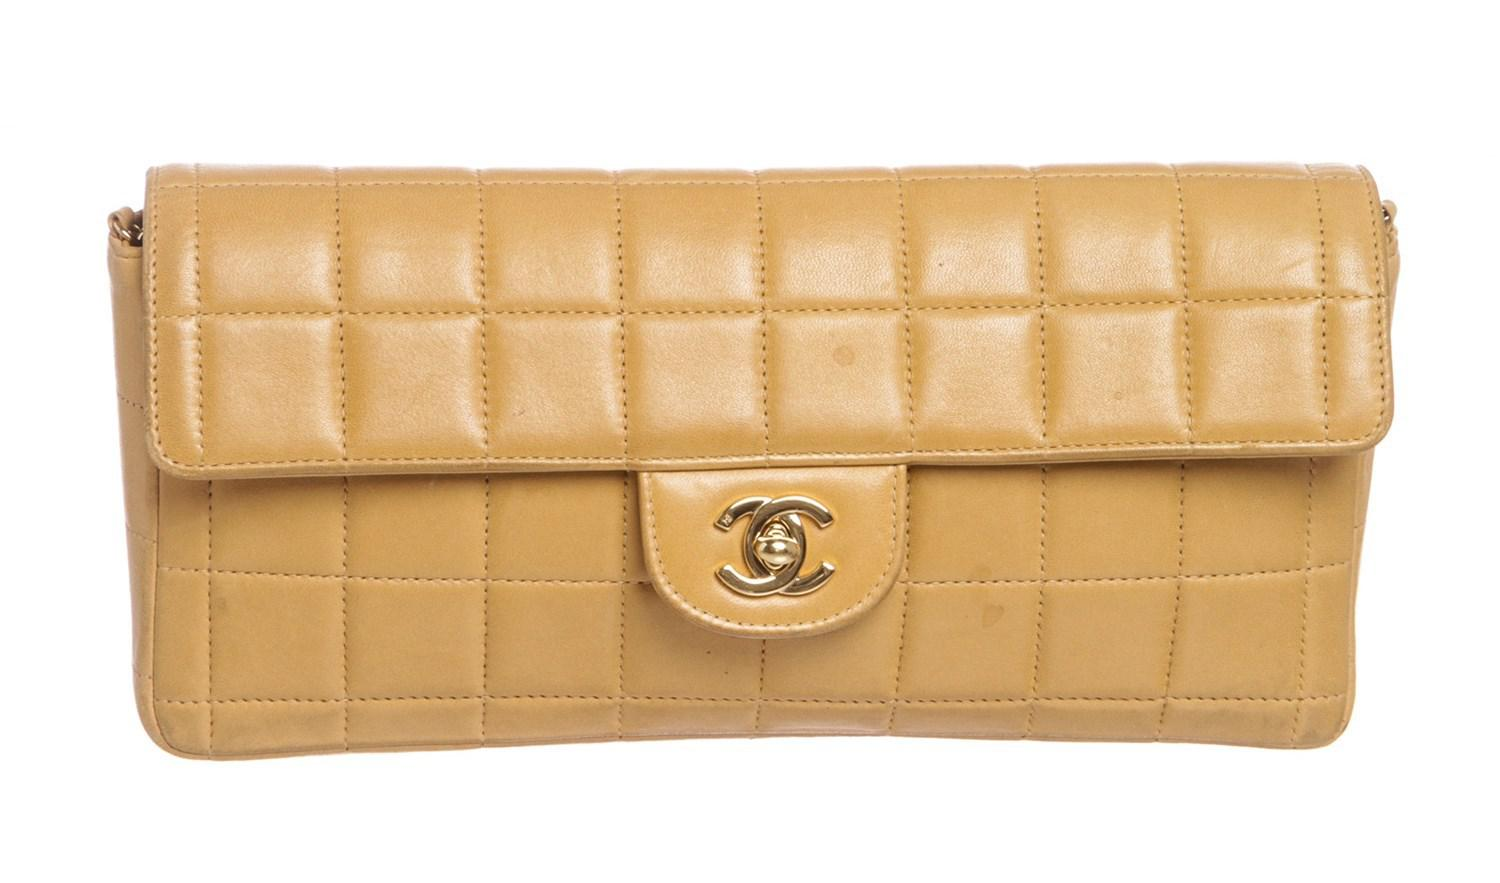 a9bbe4451446 Chanel Beige Lambskin Chocolate Bar East West Flap Bag in Natural - Lyst